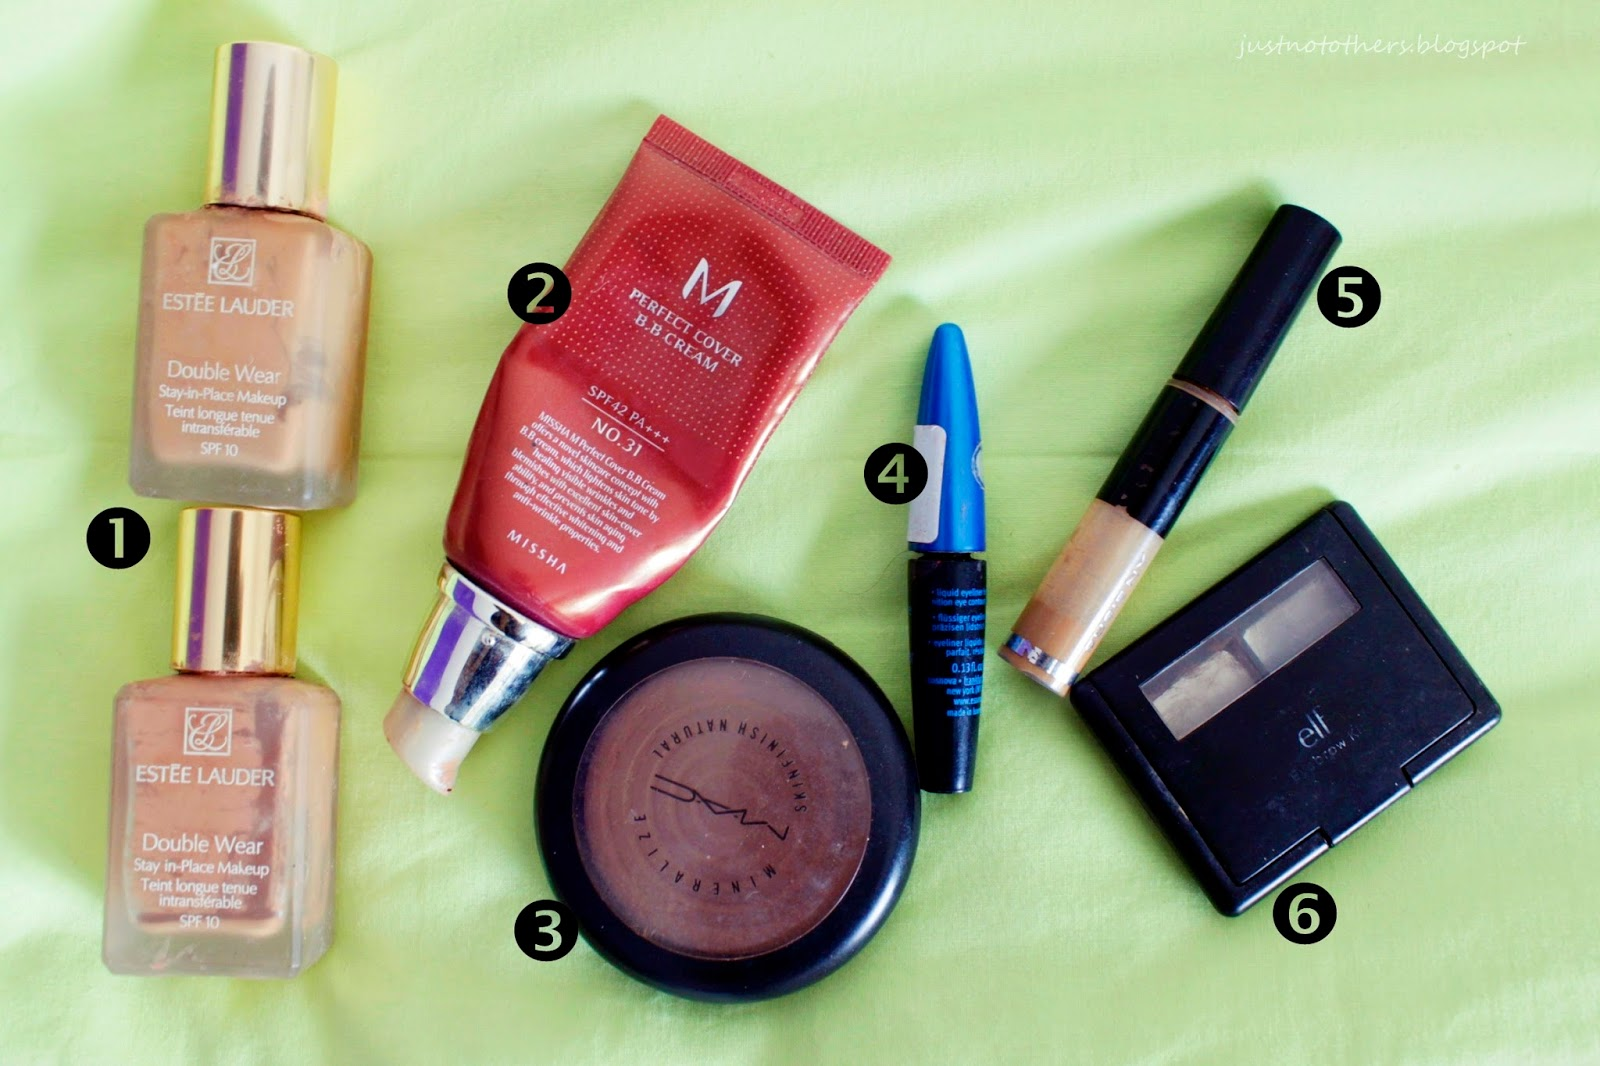 Estee Lauder Double Wear 3N1, 4C1, Missha Perfect Cover BB Cream no 31, Mac MSF Dark, Susie N.Y., Essence Liquid Liner, ELF Eyebrow kit